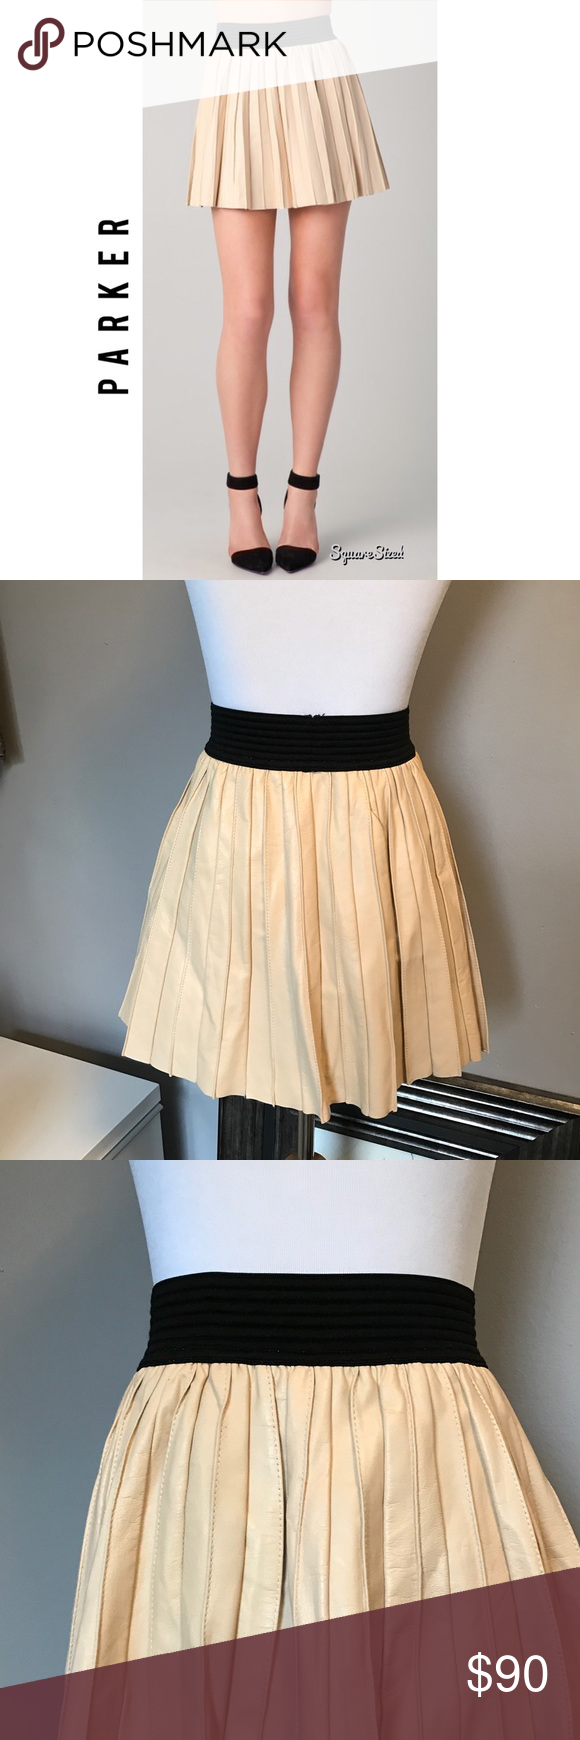 595c483a10 PARKER - Cream Pleated Genuine Leather Mini Skirt In very good condition.  Size M.